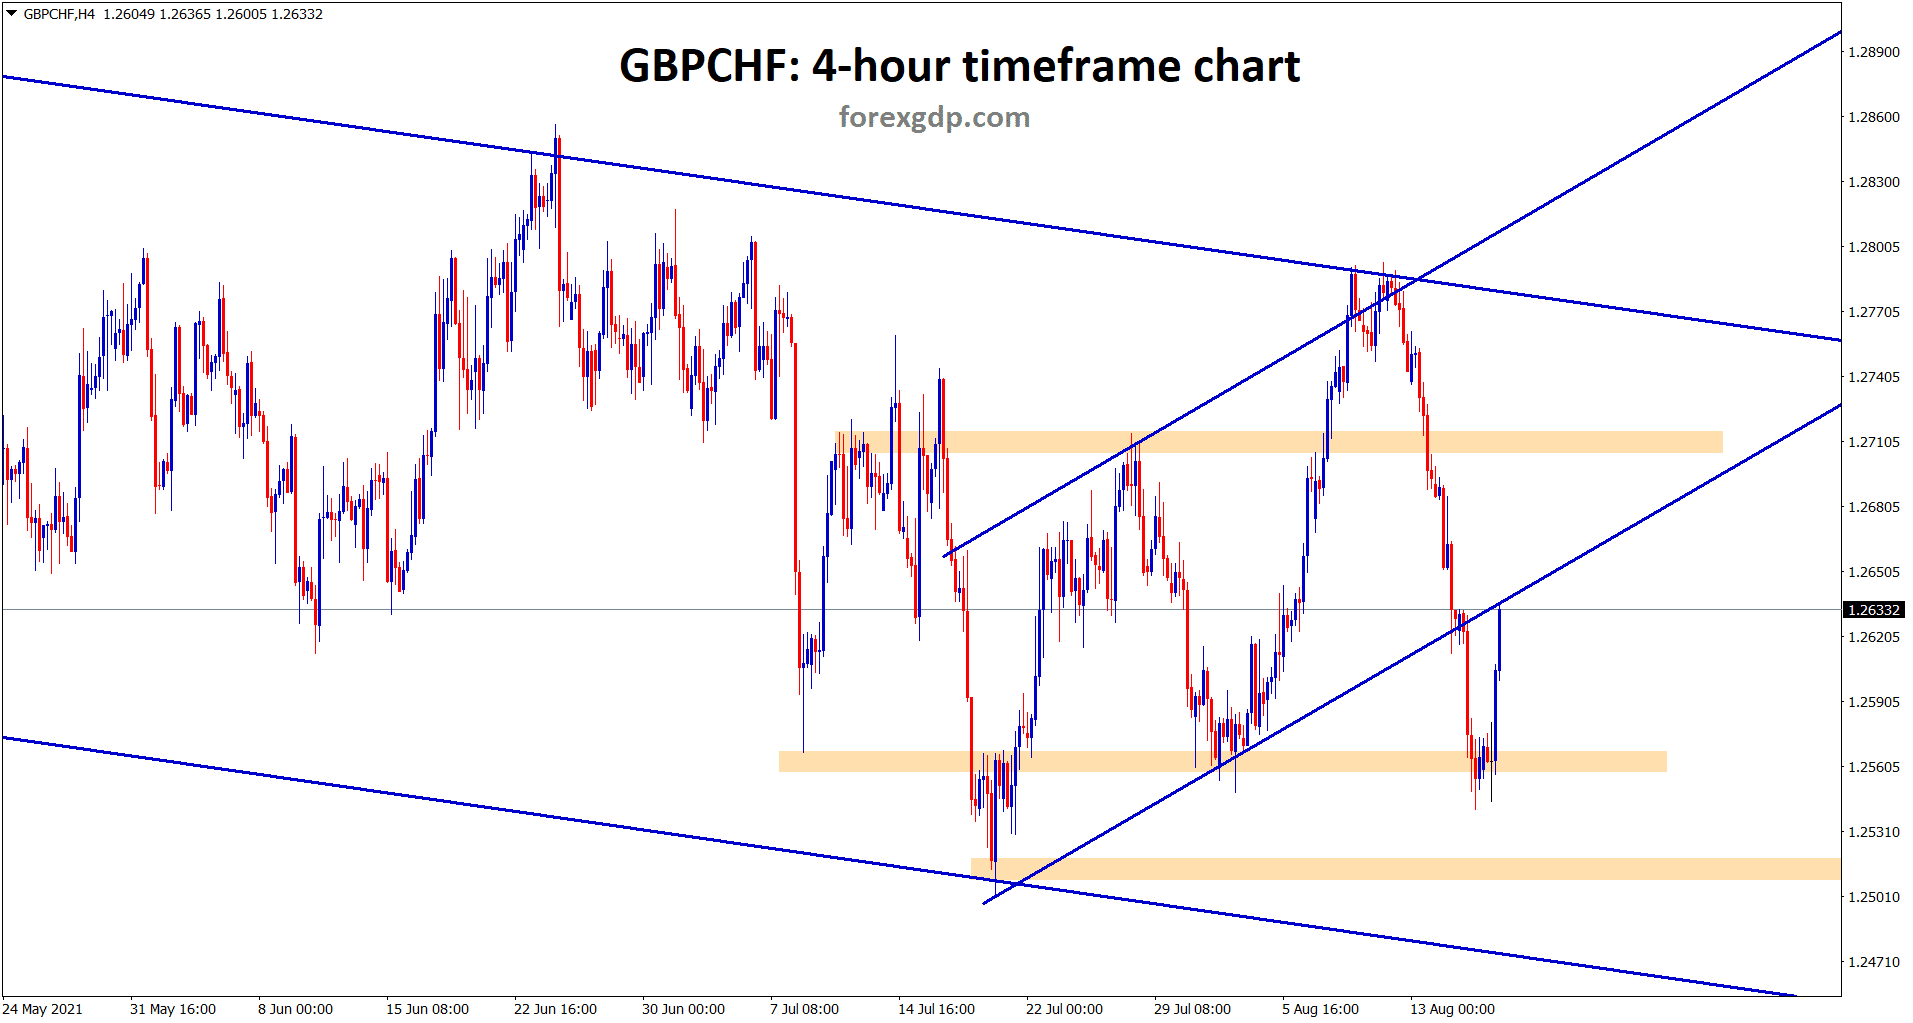 GBPCHF rebound from the support and retesting the previous broken ascending channel